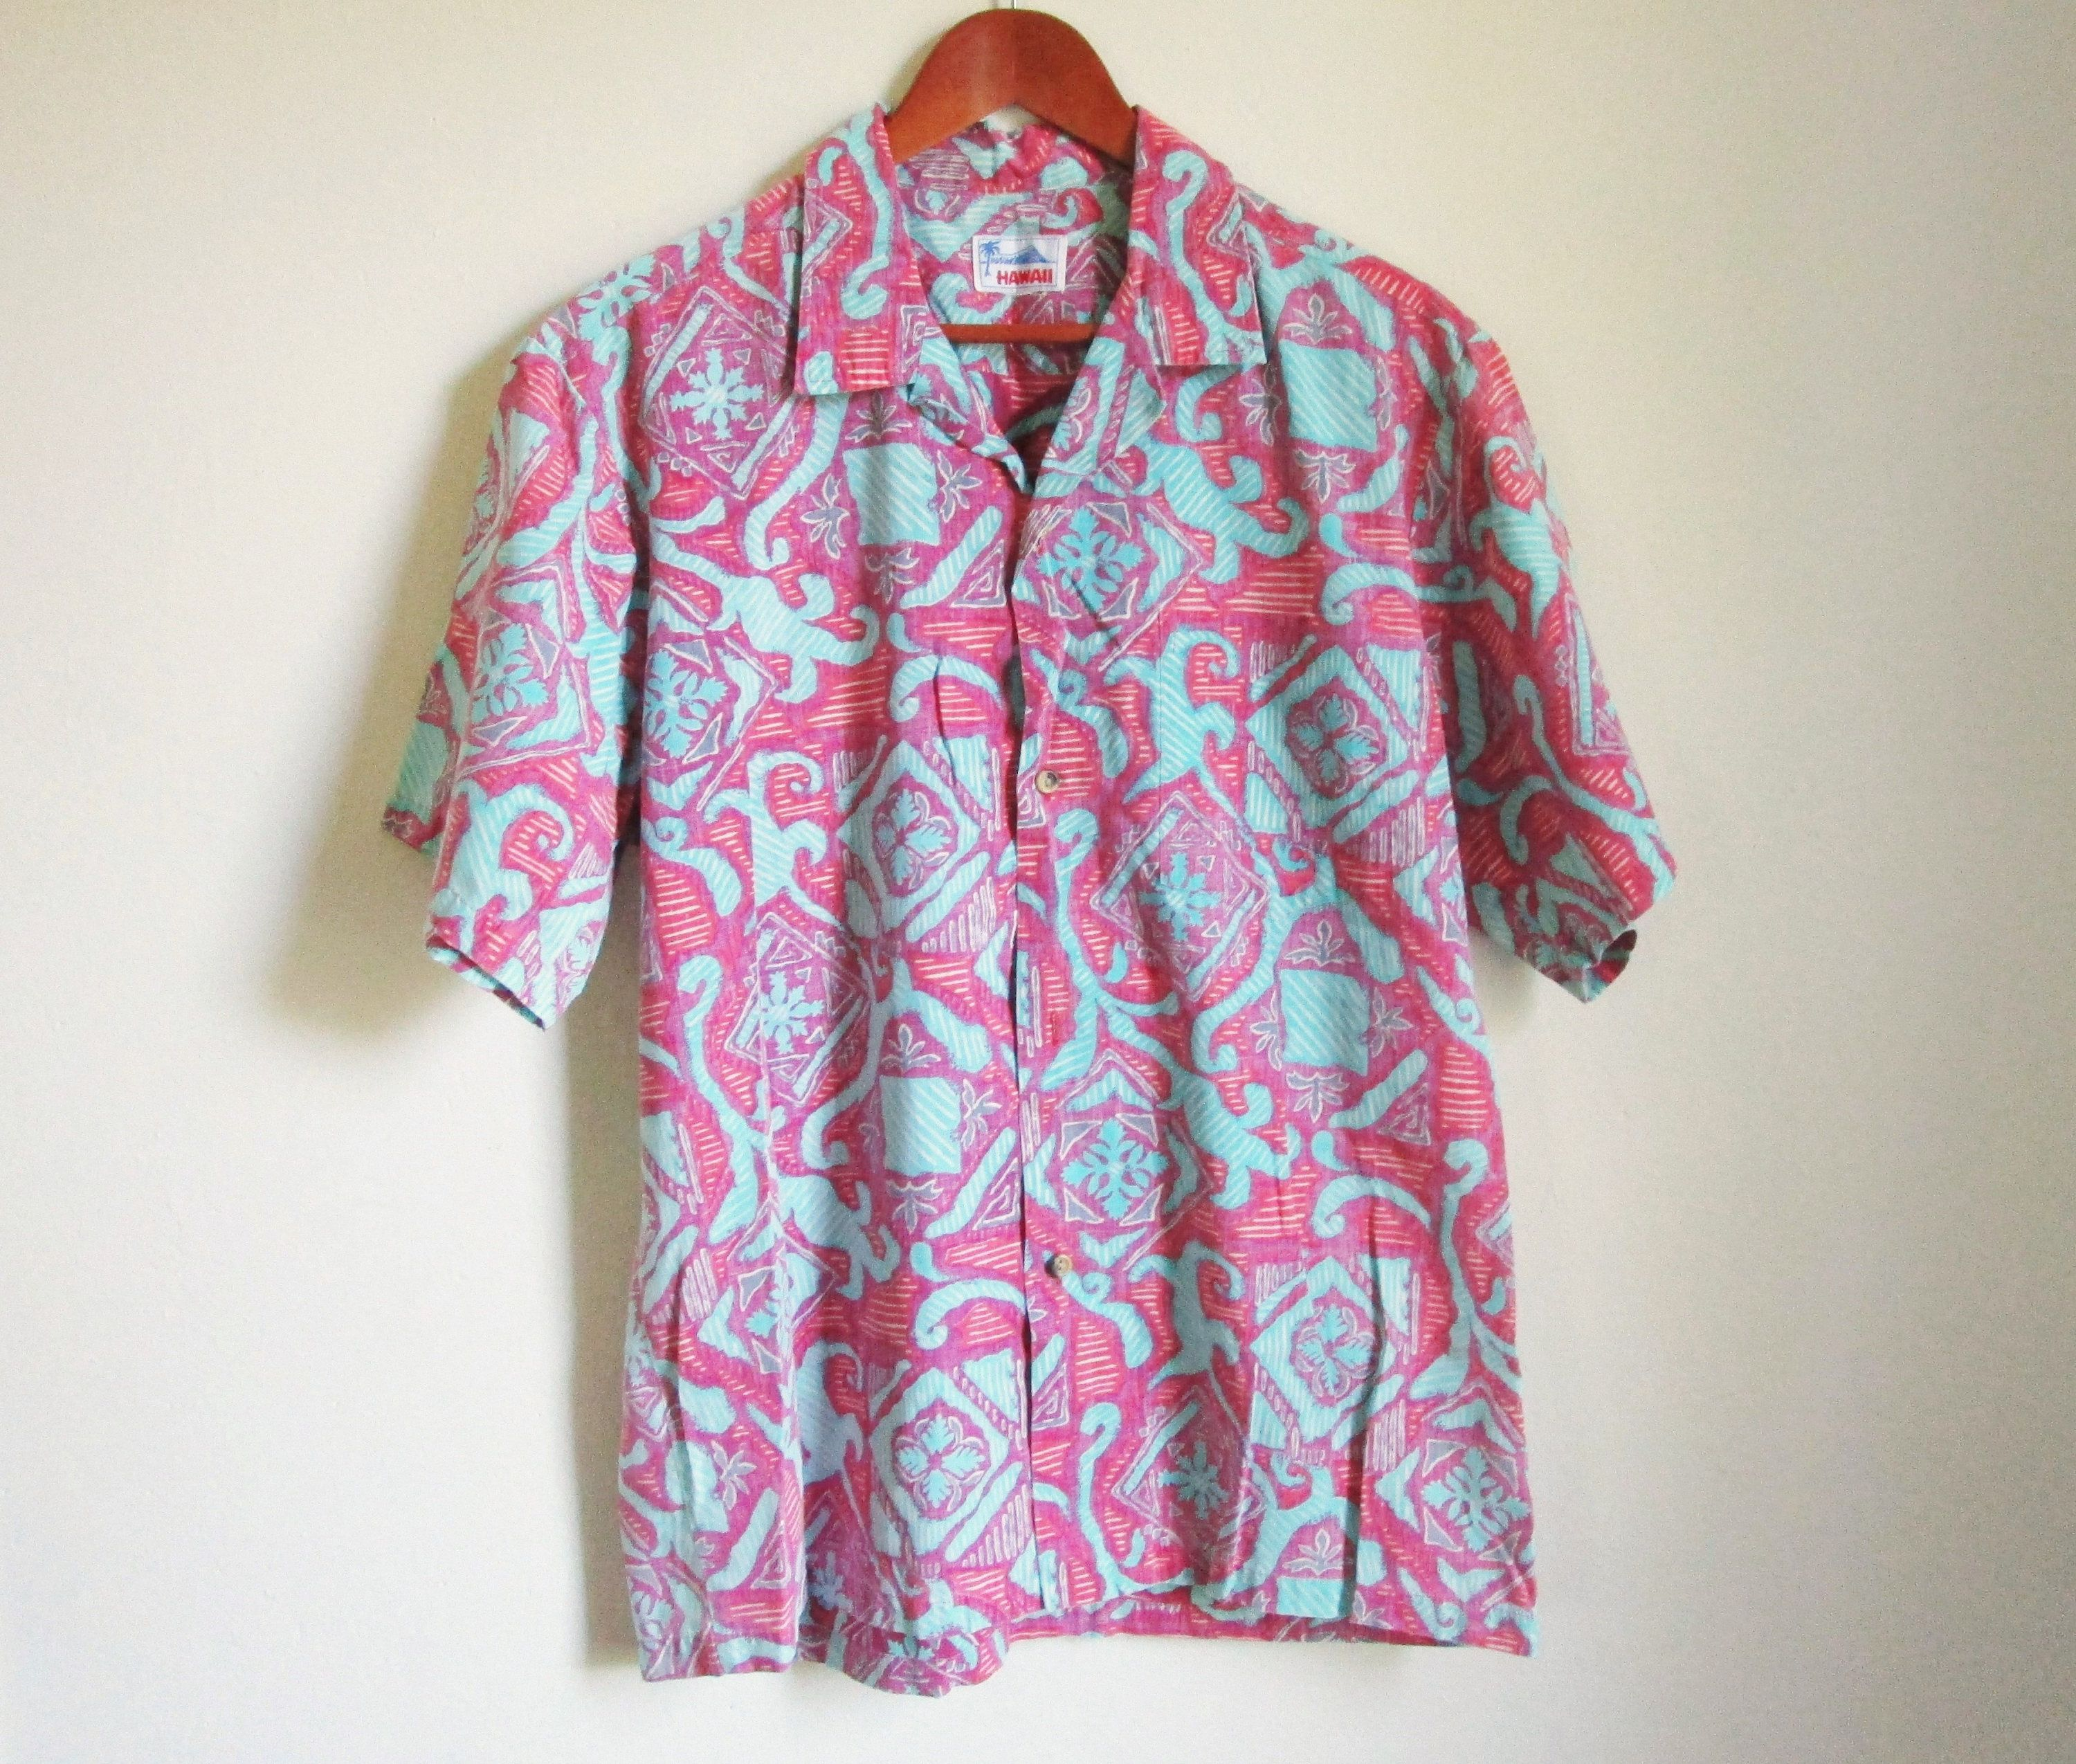 9afa7dd9 Vintage Hawaiian Shirt Mens Button Down Shirt Hawaiian Print Shirt 70s Hawaiian  Shirt 70s Mens Shirt Short Sleeve Button Down Shirt by WashedCloth on Etsy